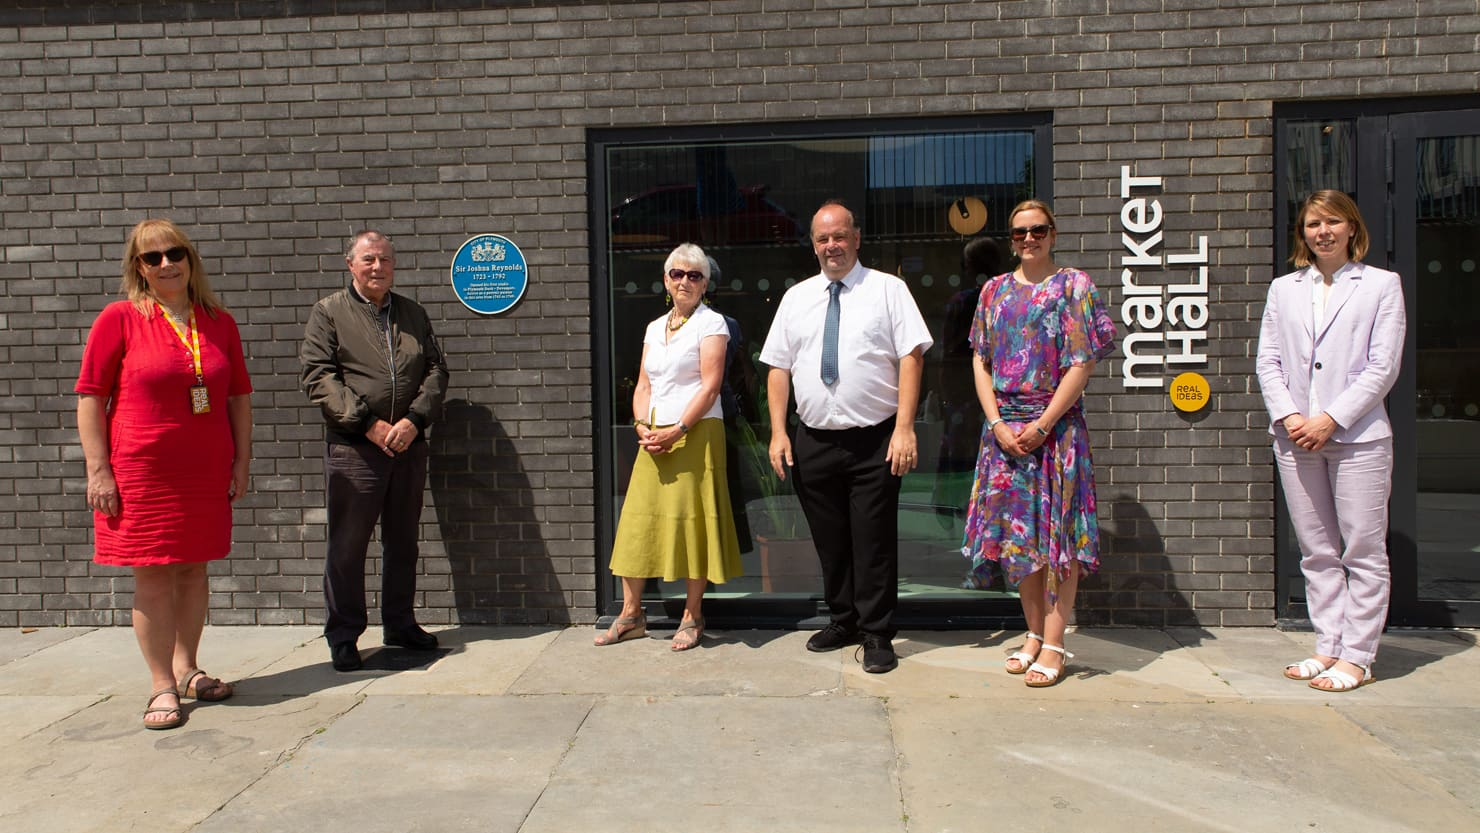 From L-R: Lindsey Hall, CEO, Real Ideas; Michael Moore, former Chair of the former Friends of PCMAG; Celia Bean, former Chair of the former Friends of PCMAG; Councillor Mark Deacon; Louisa Blight, Collections Manager at The Box and Emma Philip, Senior Cur